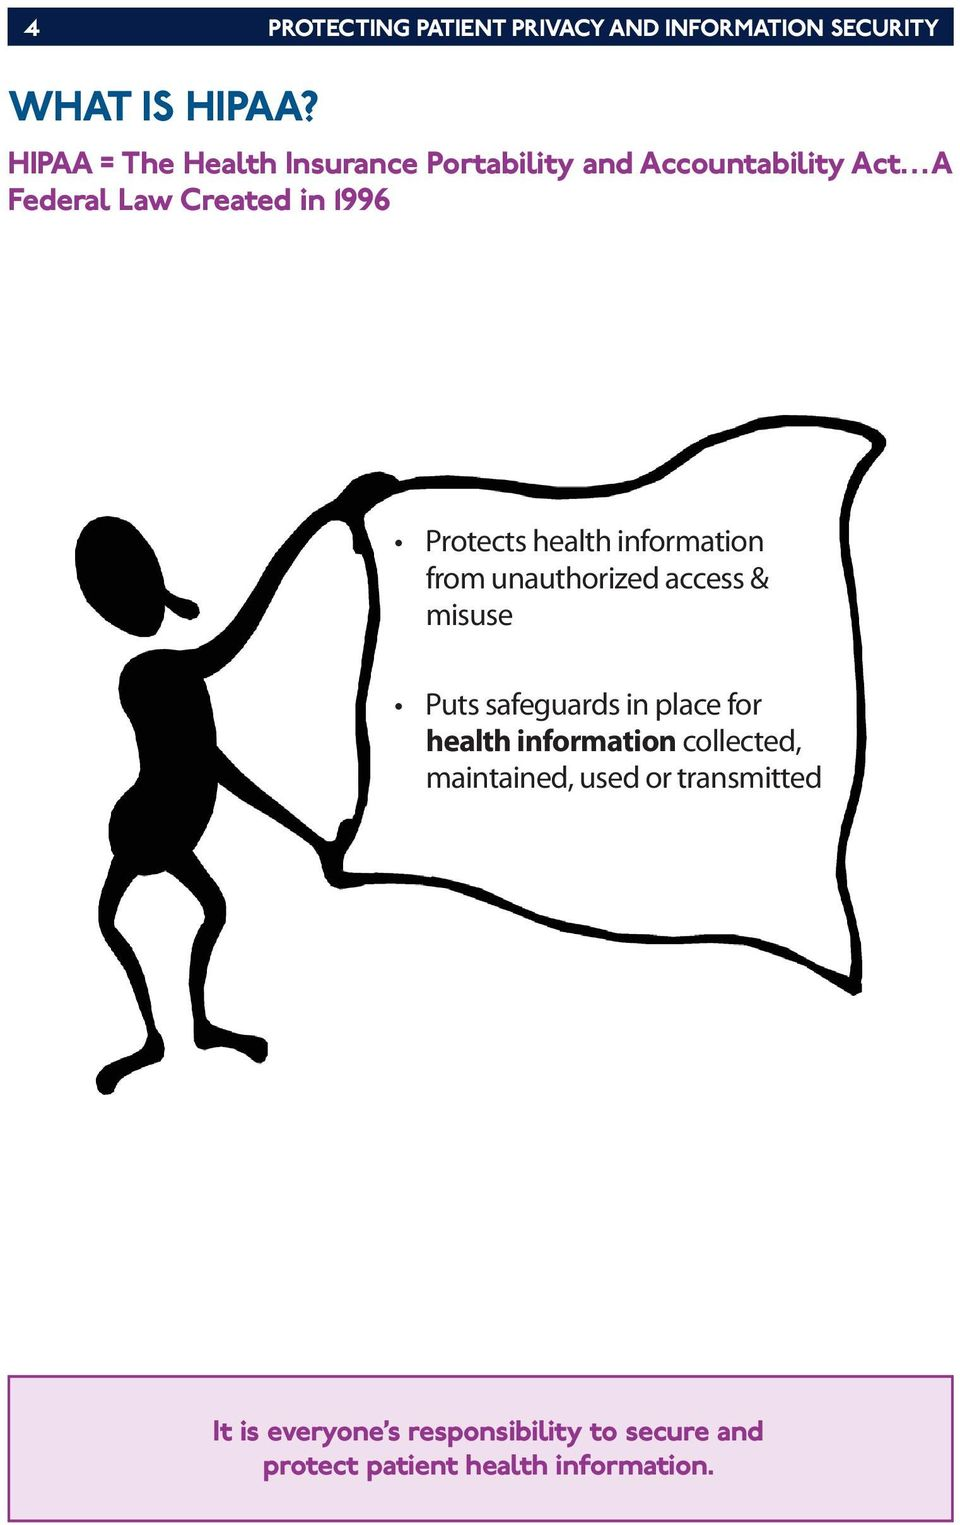 Protects health information from unauthorized access & misuse Puts safeguards in place for health